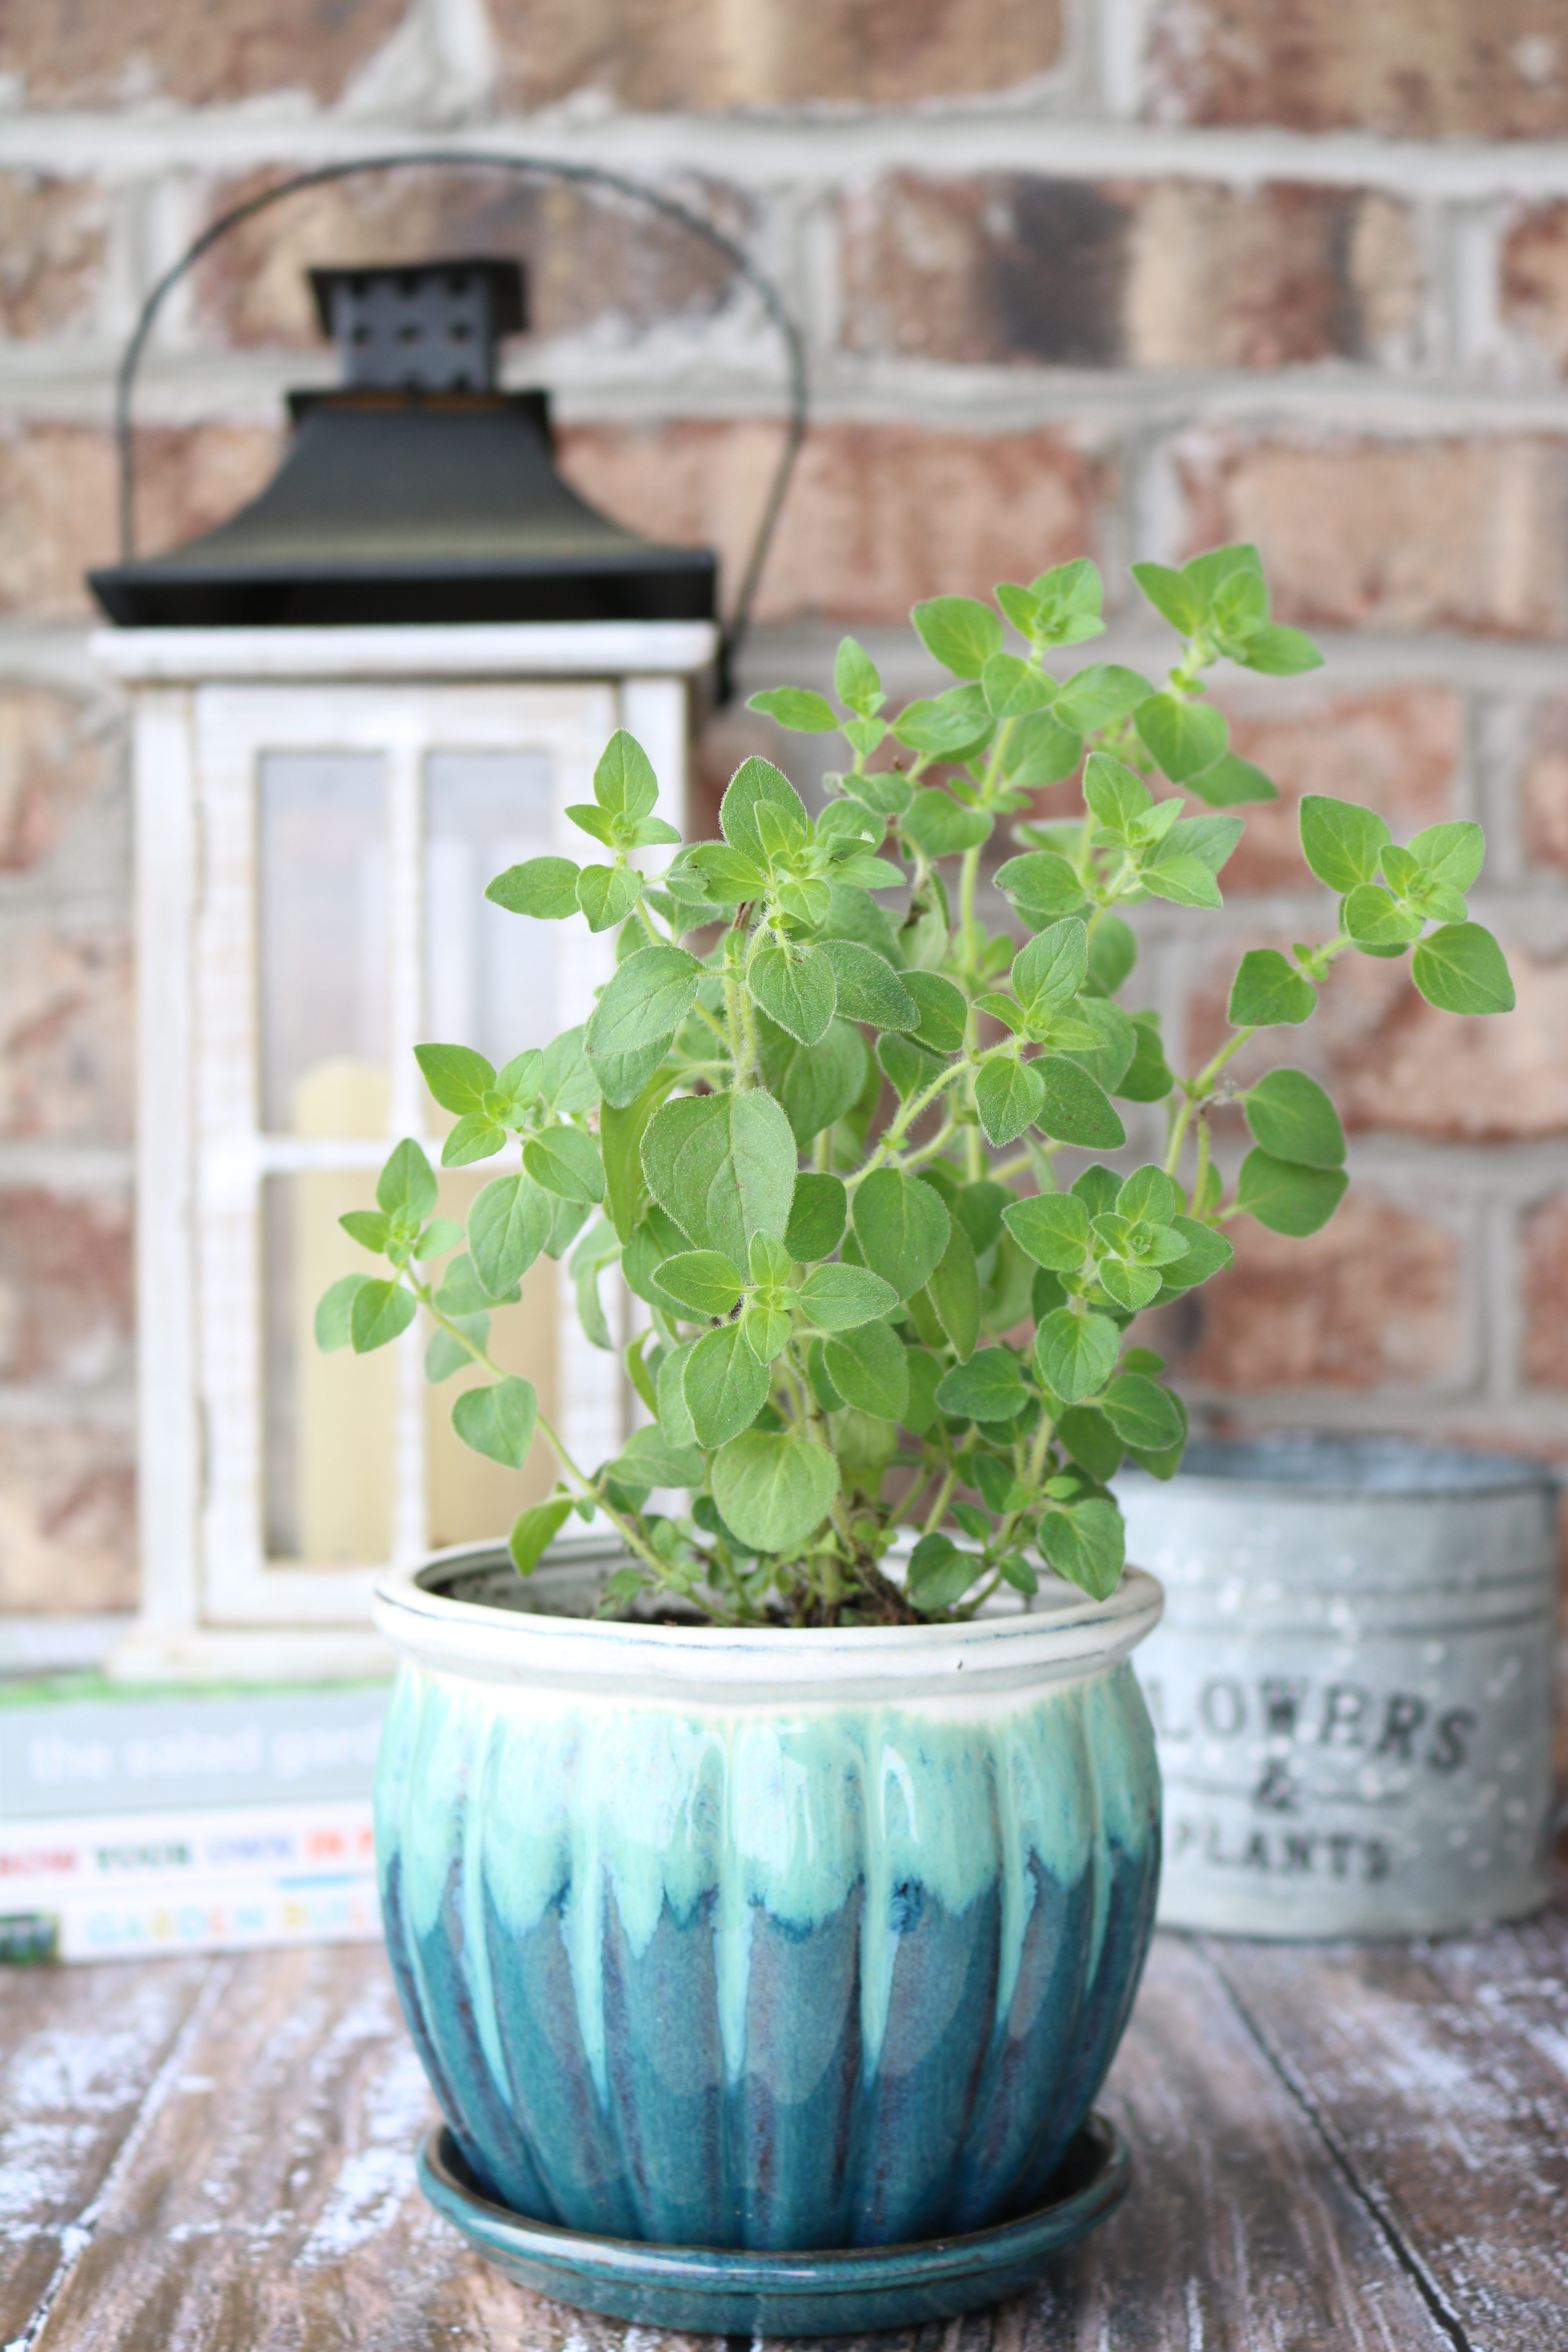 Hot & Spicy Oregano What It Is and Why You Need It in